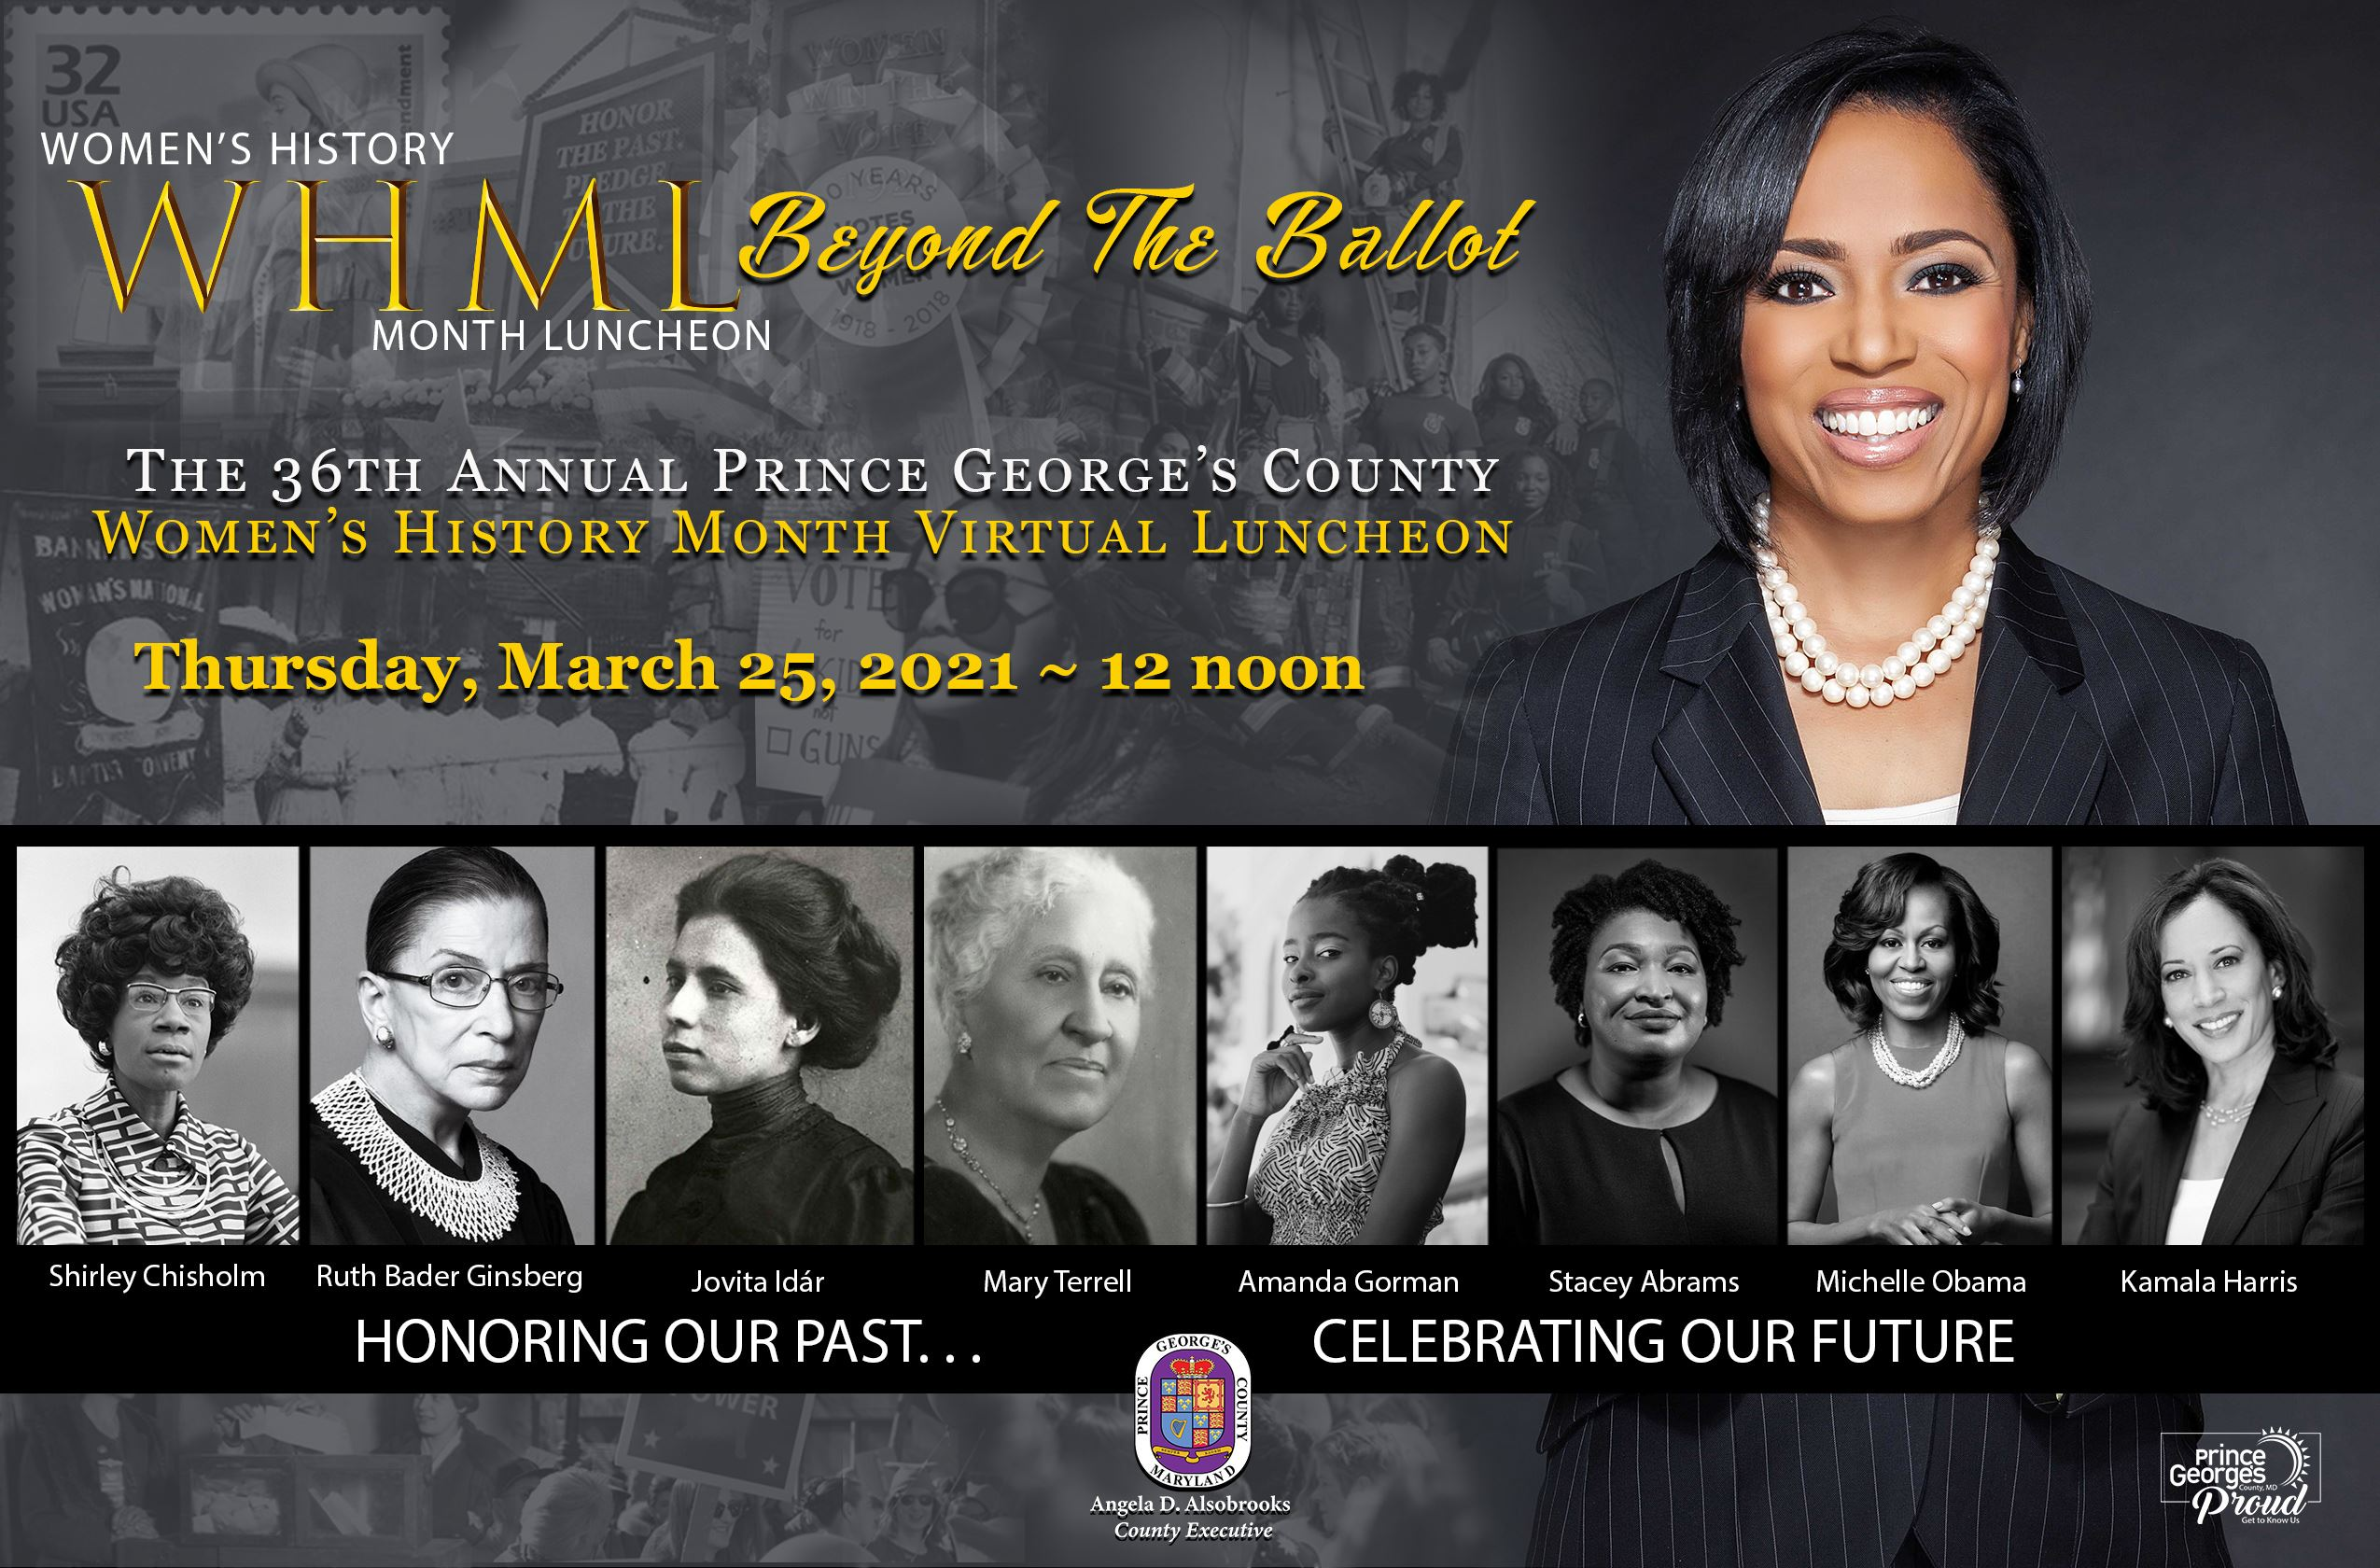 Women's History Month Luncheon flyer